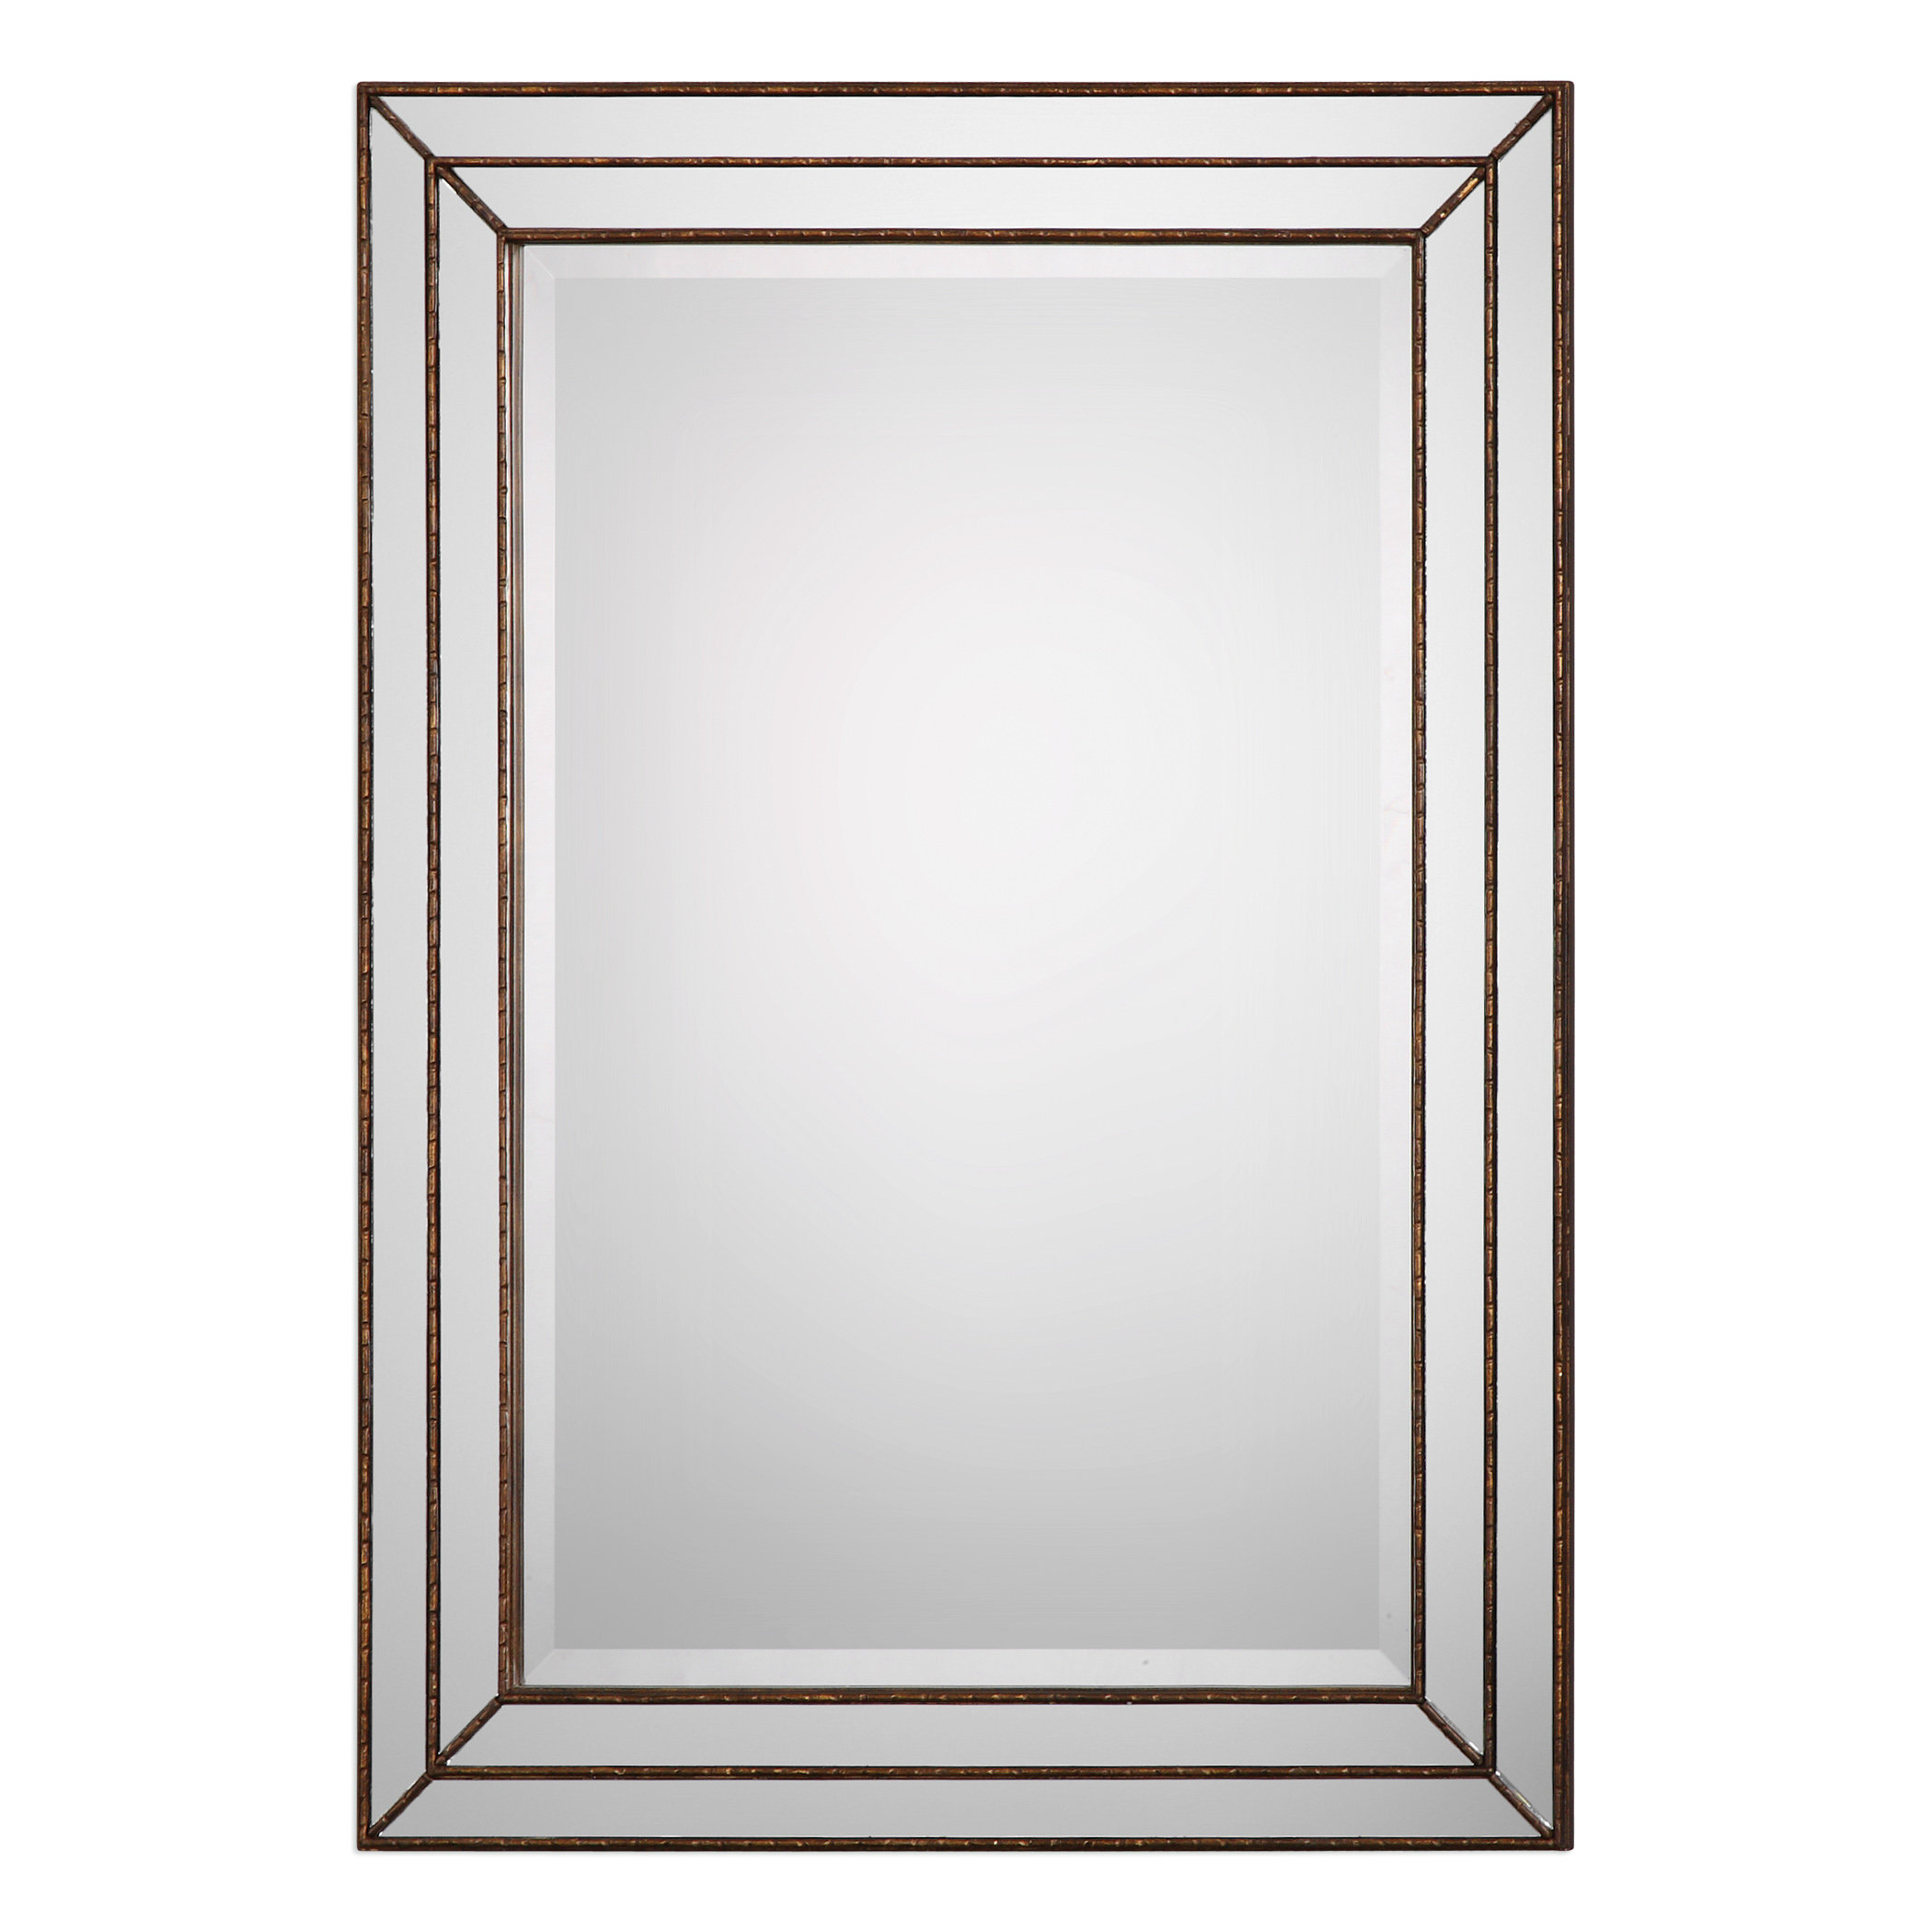 Greyleigh Willacoochee Traditional Beveled Accent Mirror Within Berinhard Accent Mirrors (View 10 of 20)